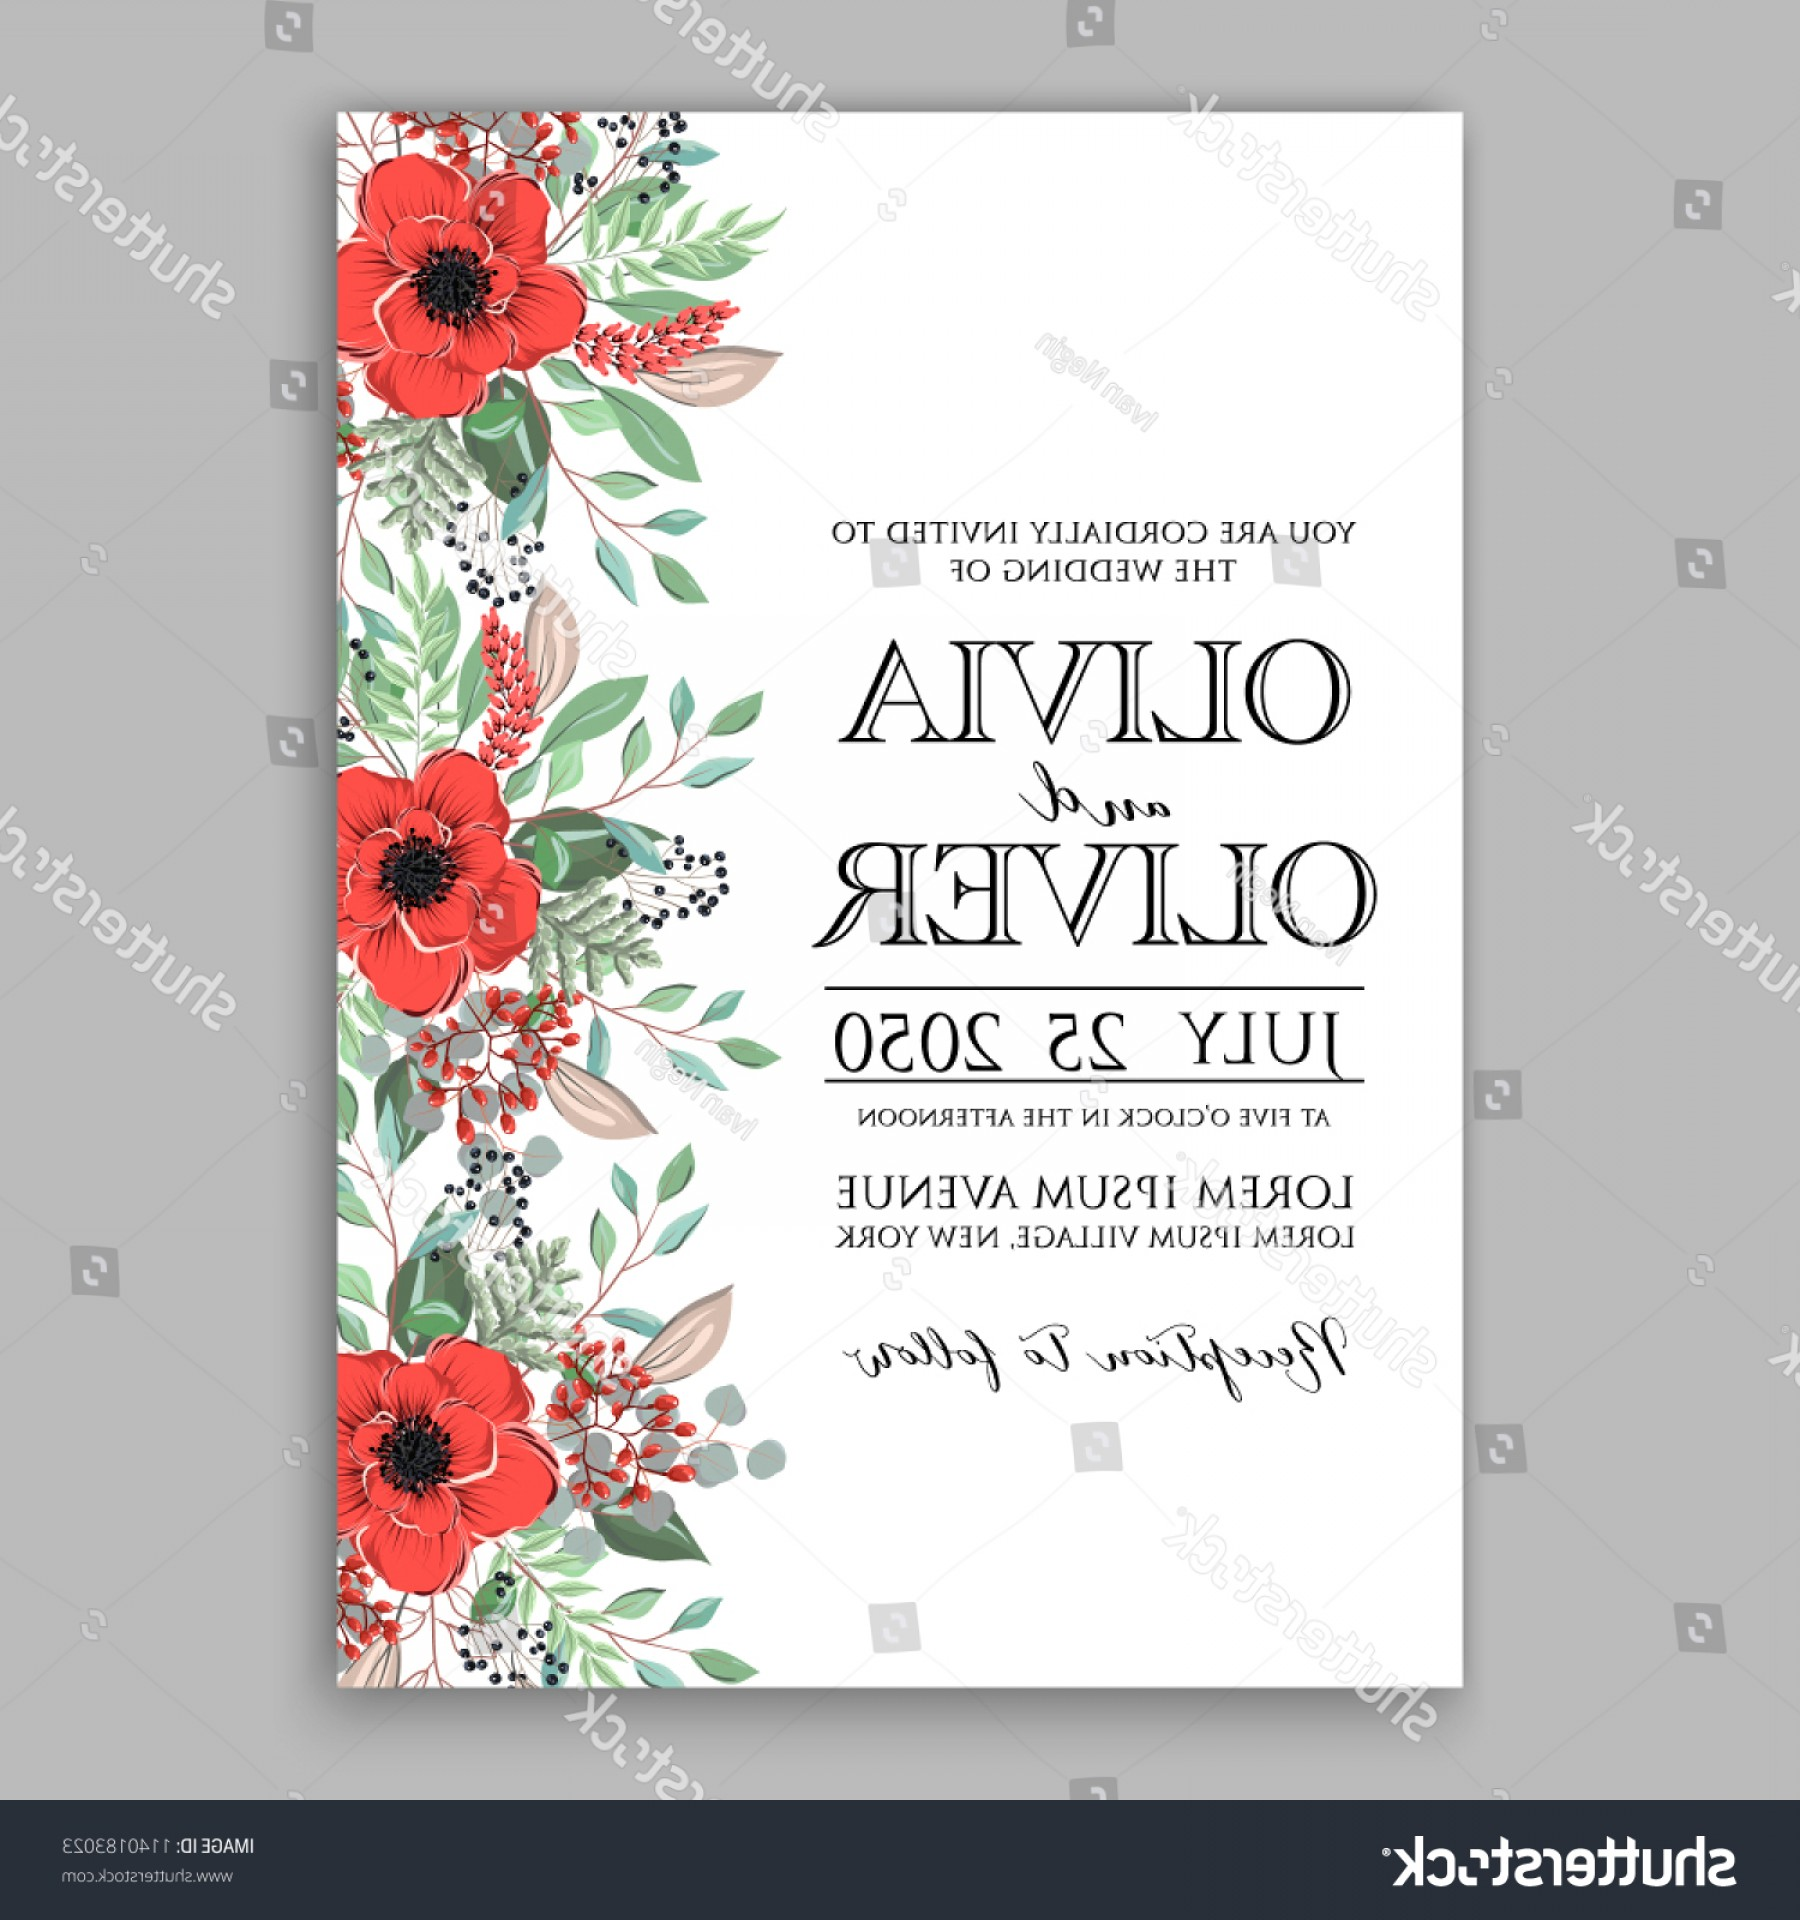 Rustic Wedding Invitation Vector: Red Poppy Greenery Rustic Wedding Invitation